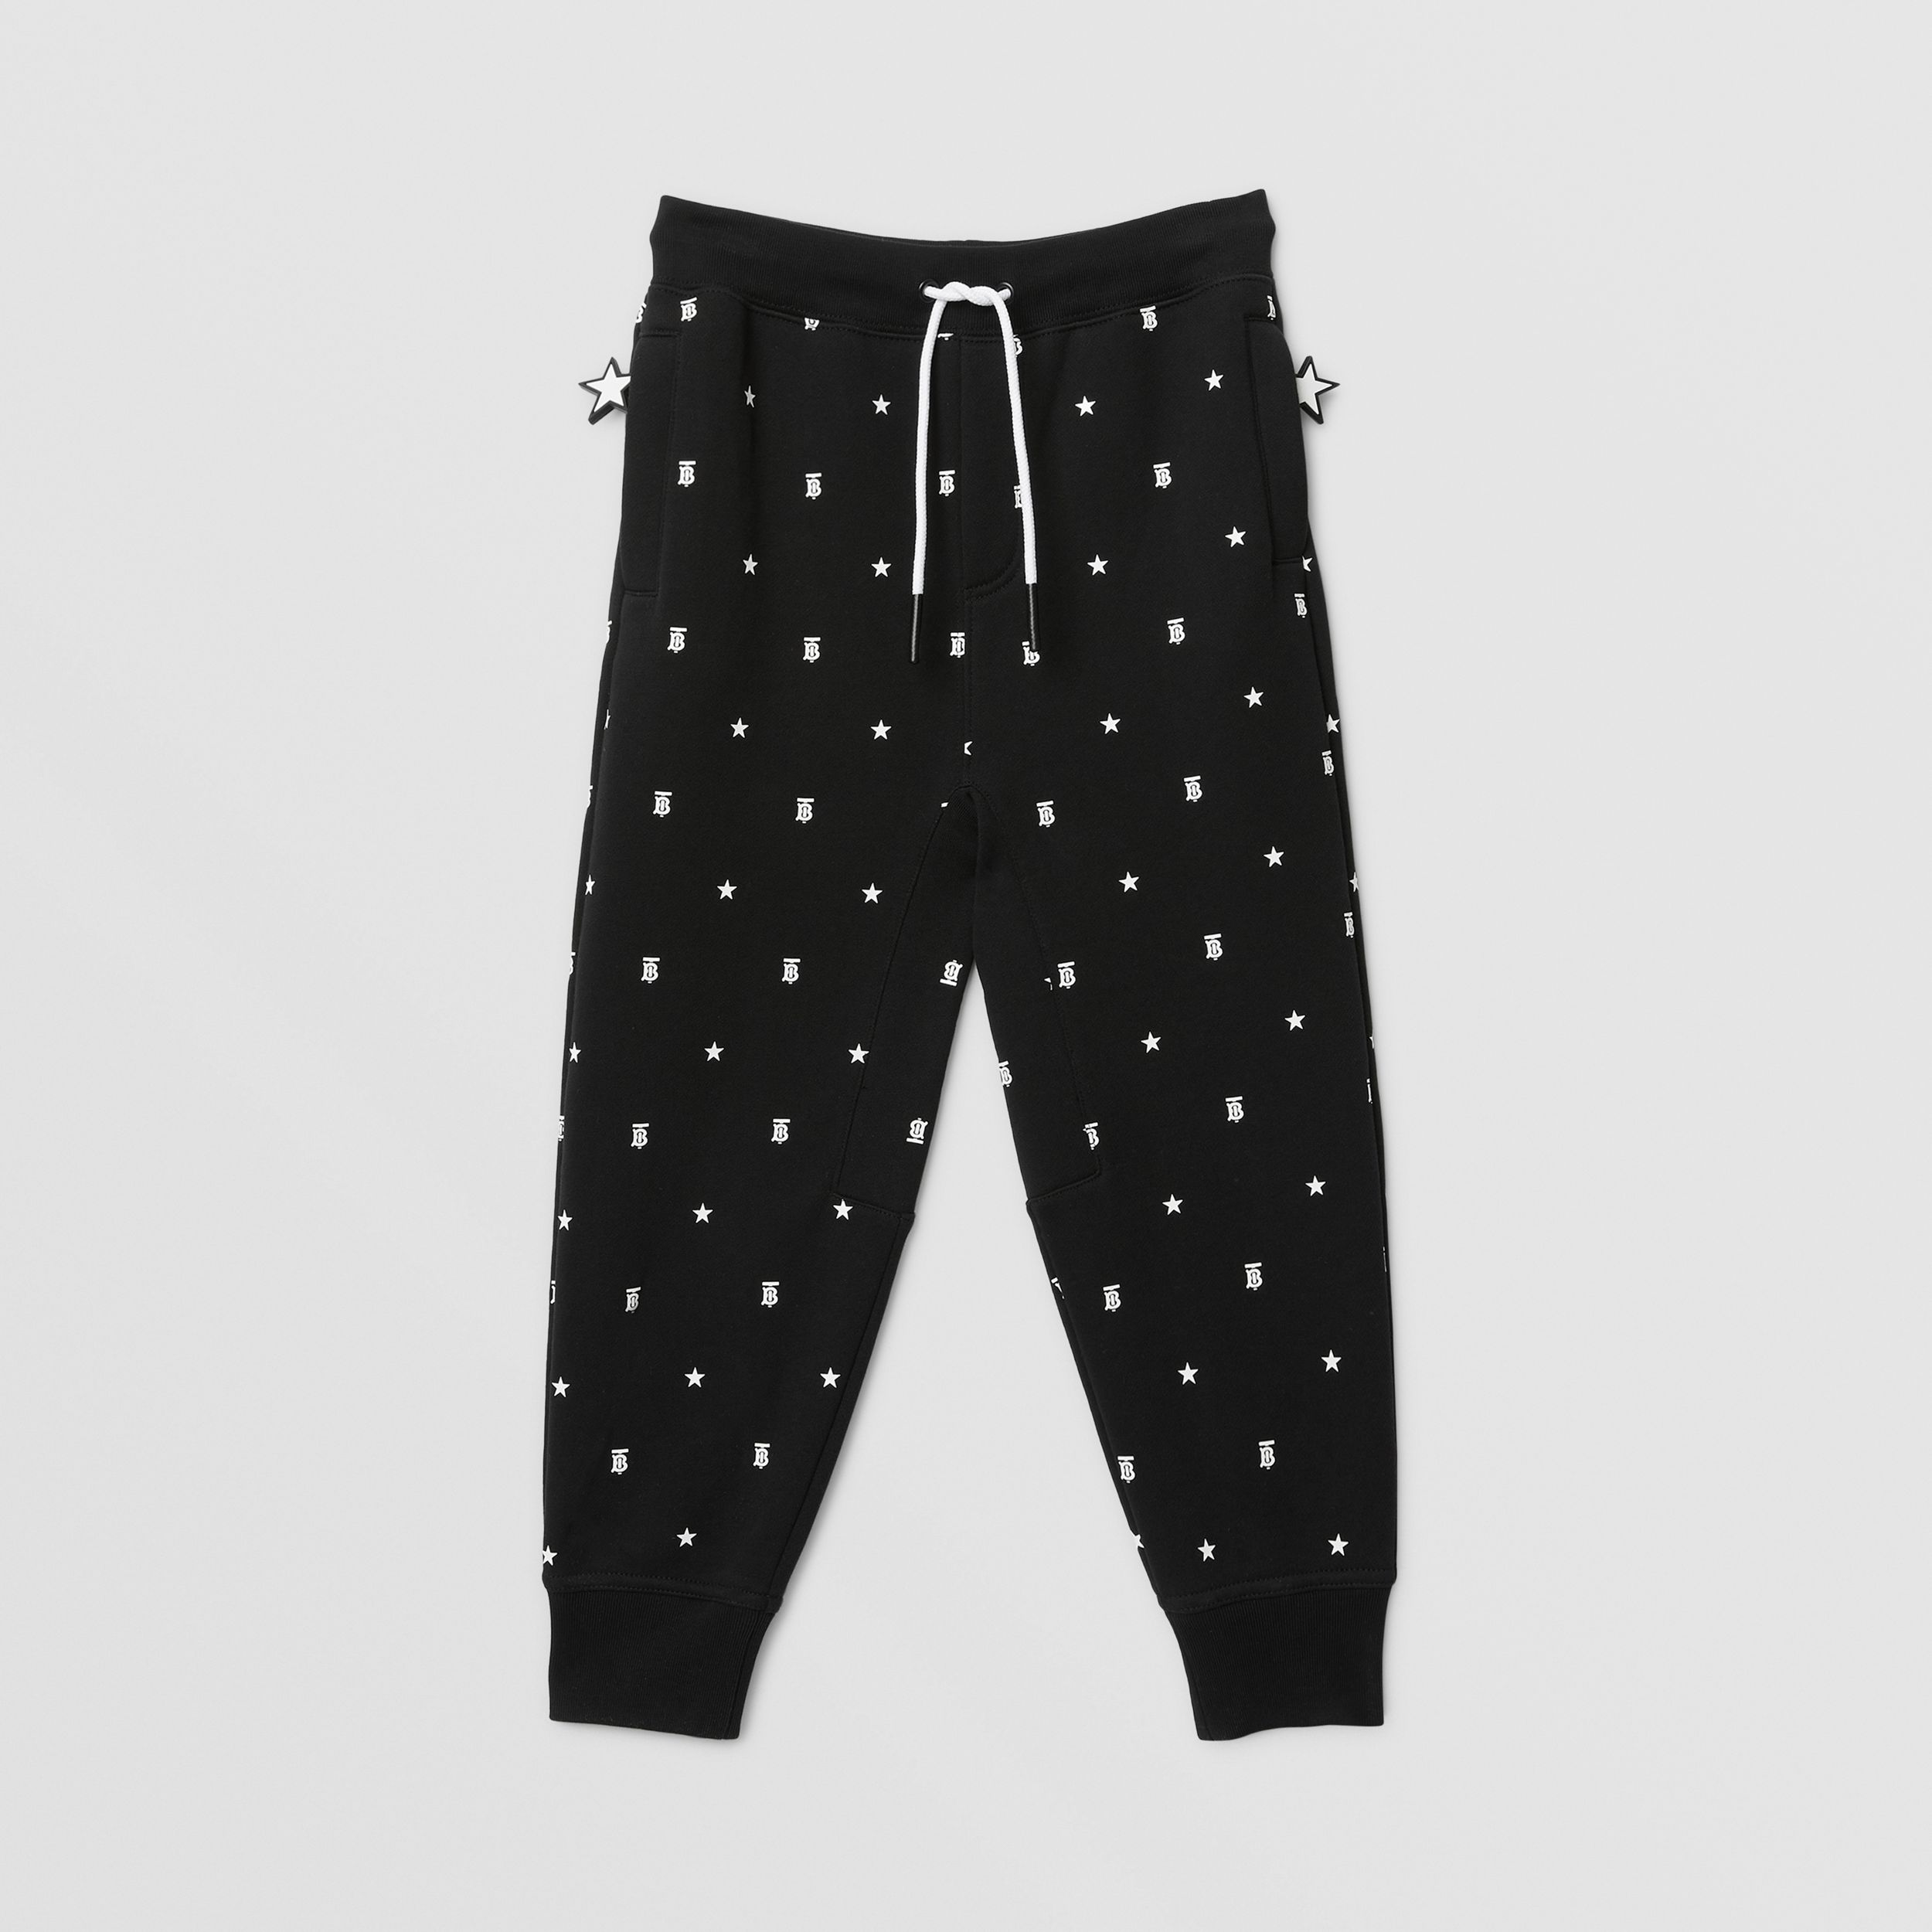 Star and Monogram Motif Cotton Jogging Pants in Black | Burberry - 1